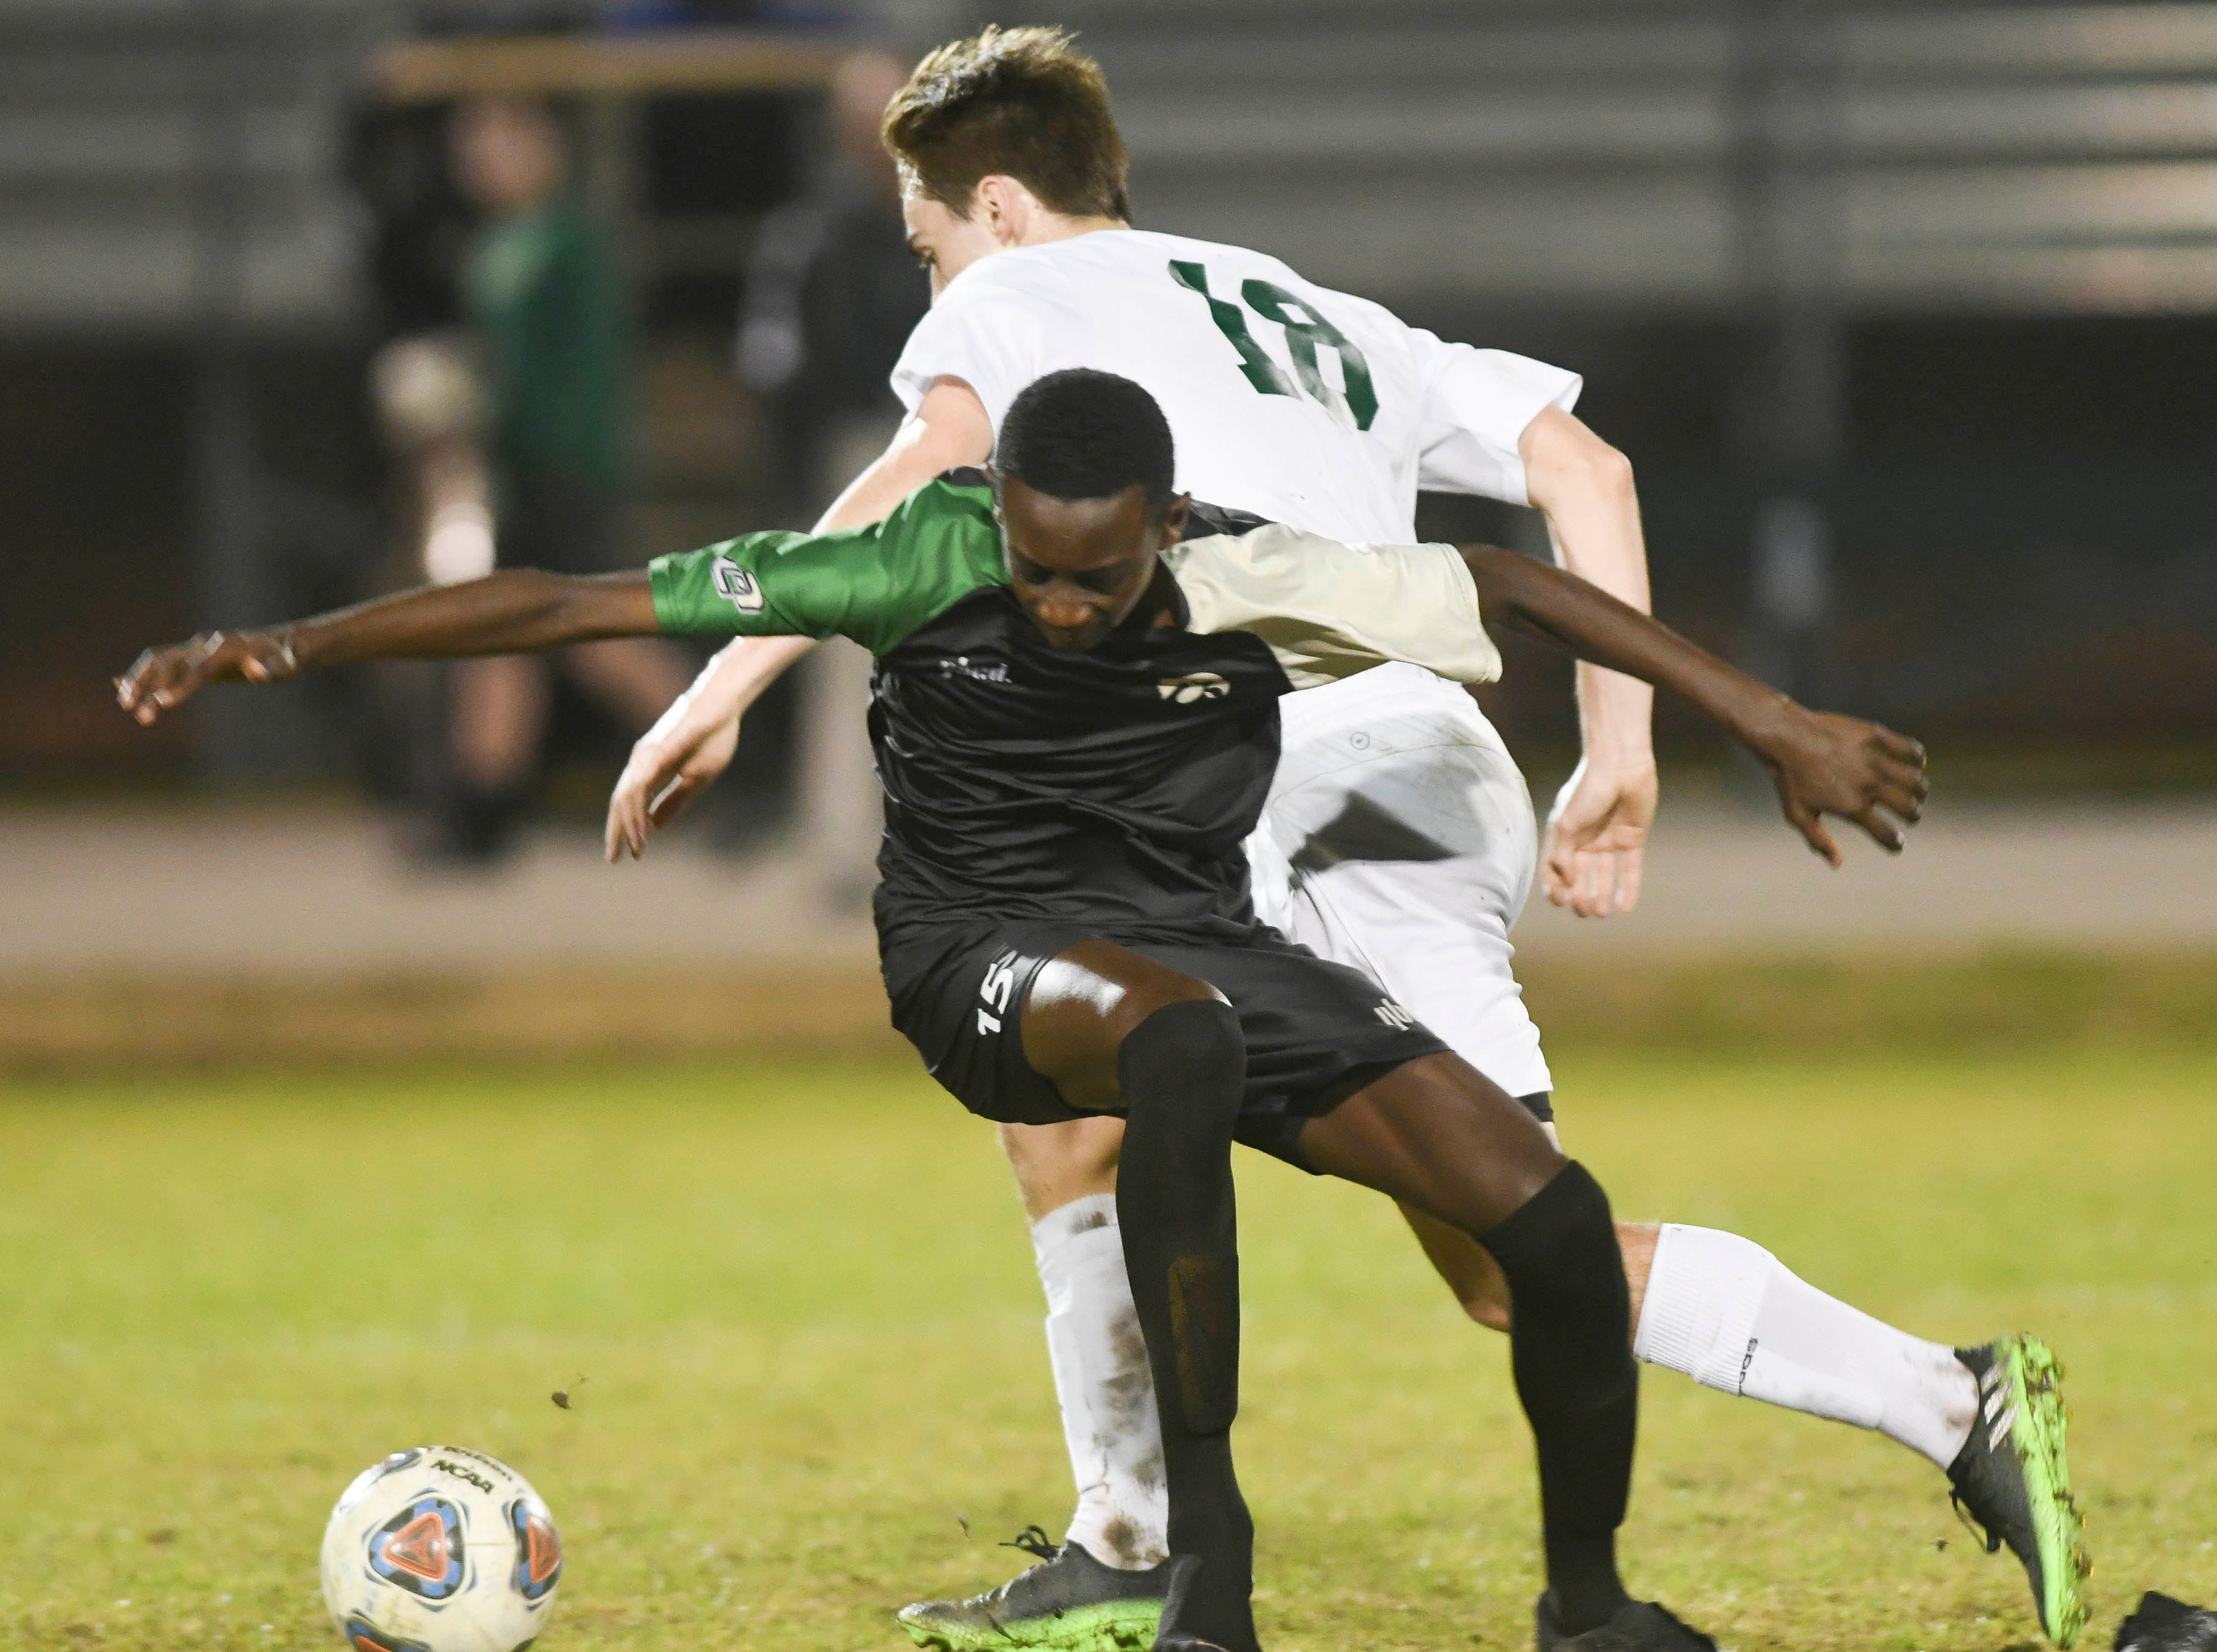 Melbourne's Cooper Bywater and Nyles Lockridge of Viera battle during Friday's game at Viera High.